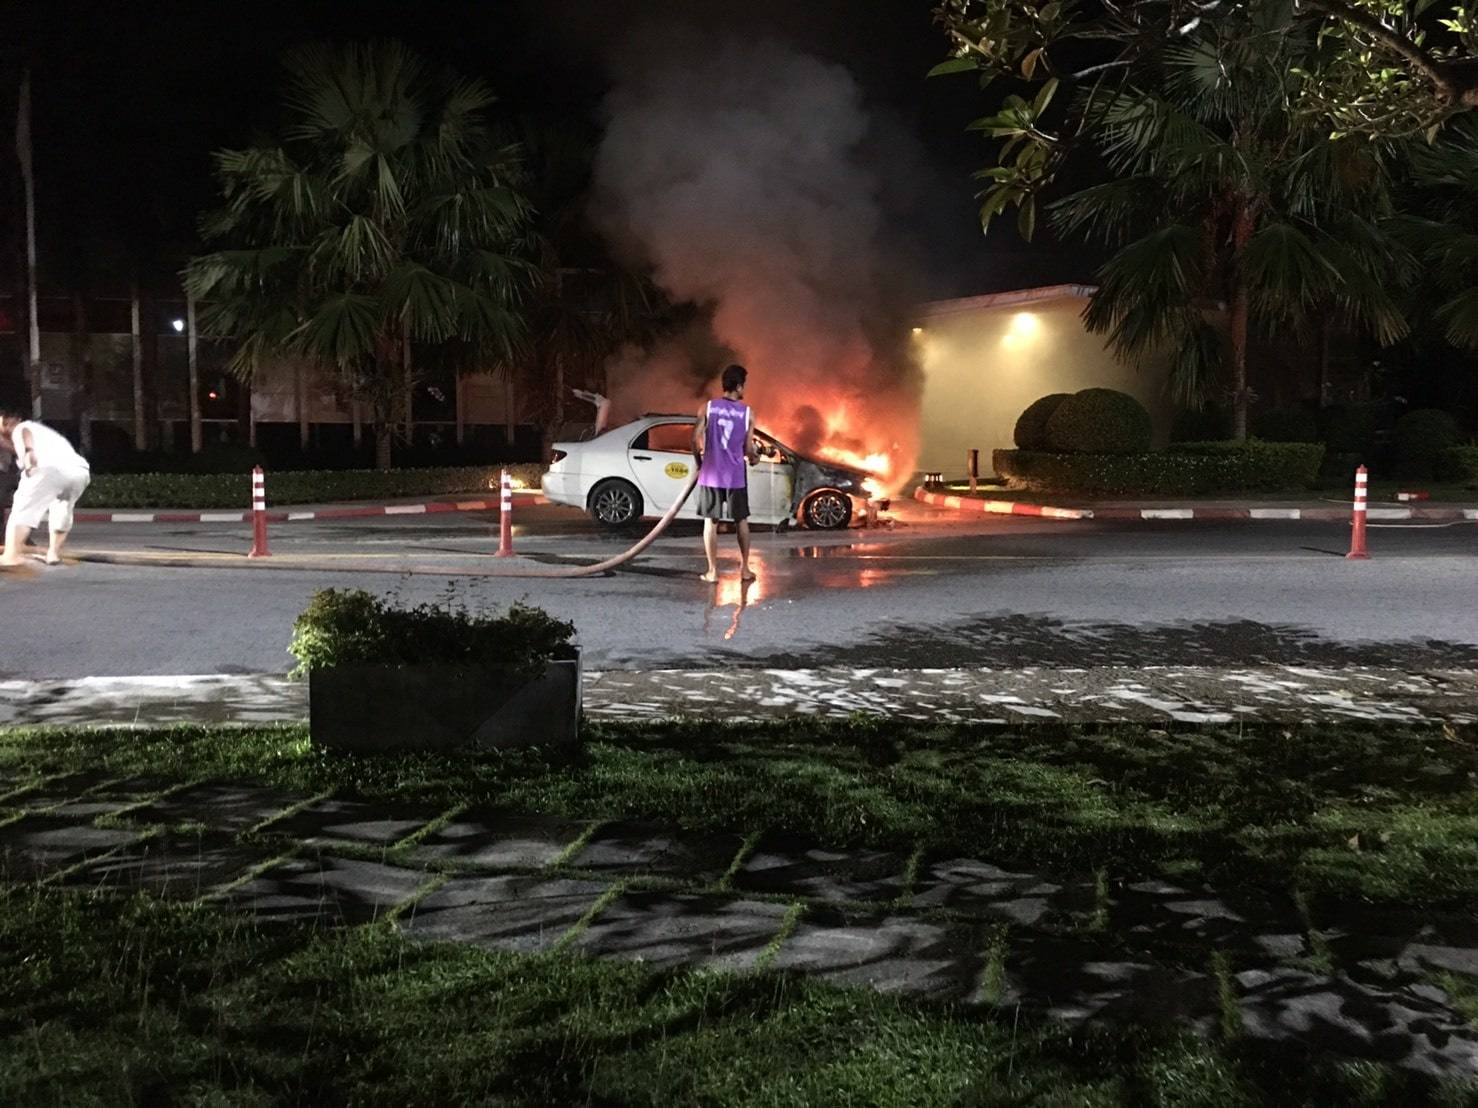 Taxi catches fire outside Cassia Laguna Hotel – No injuries | The Thaiger